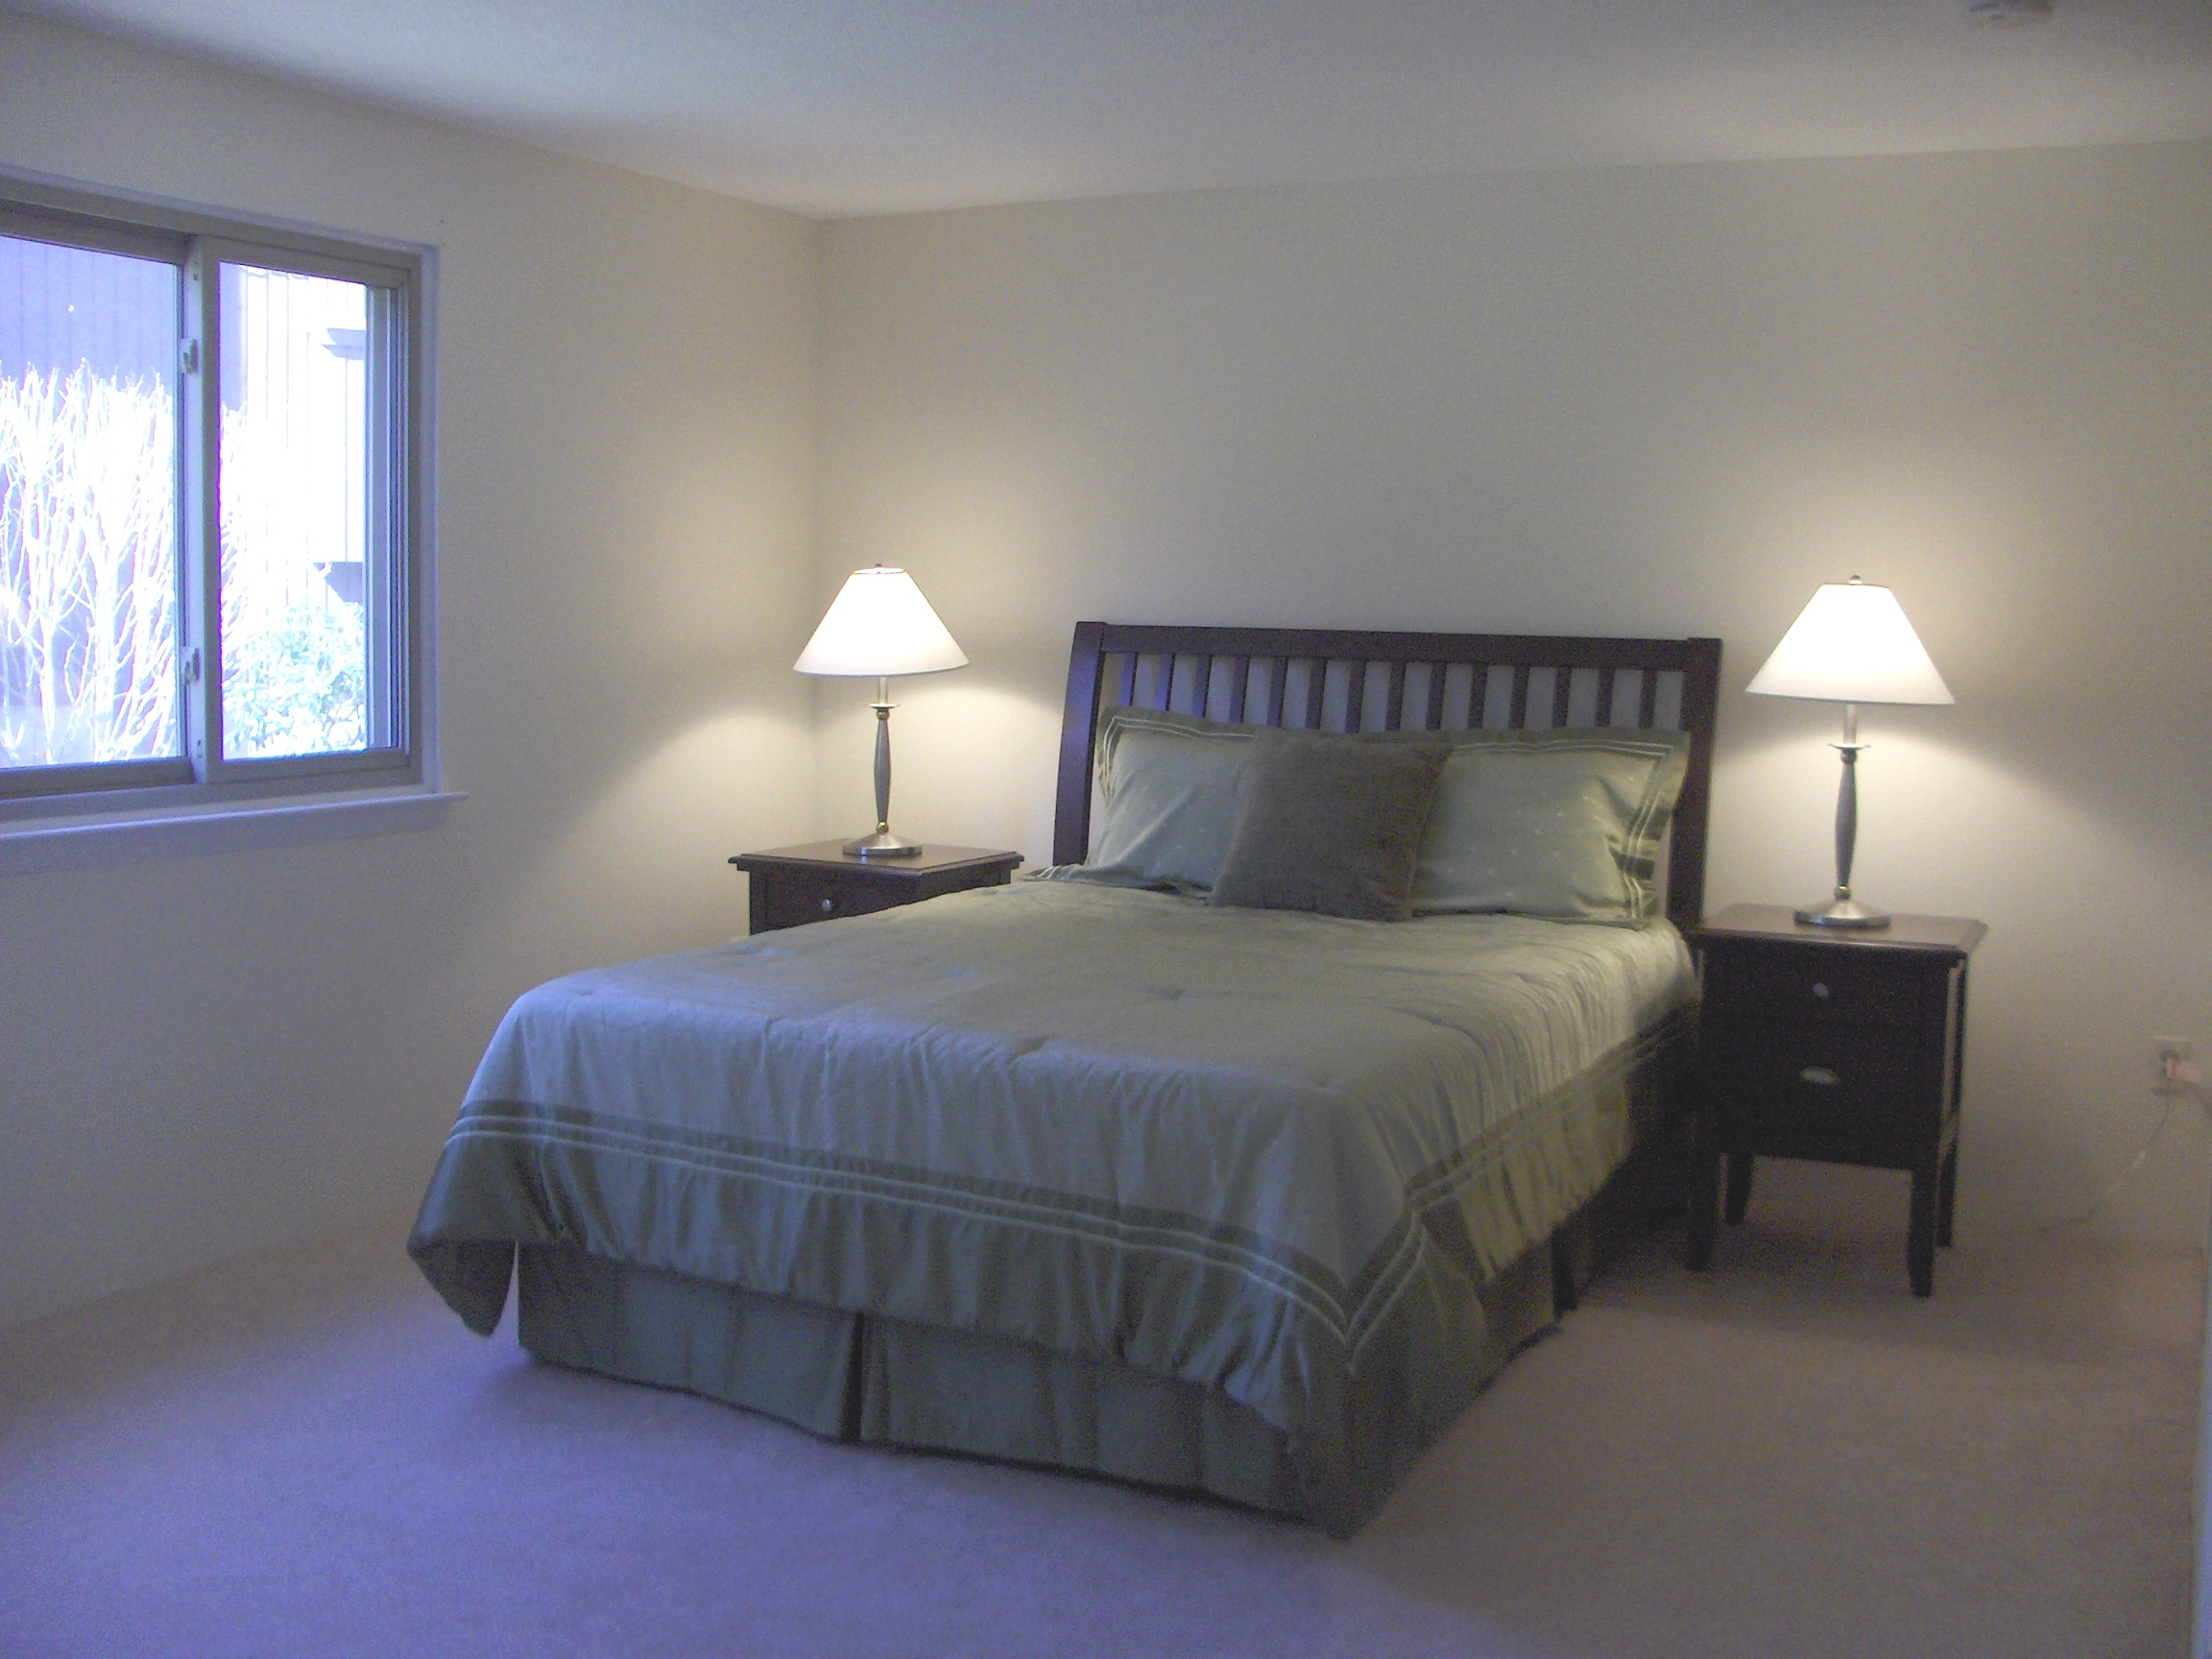 Home staging proof that staged homes sell faster atwell staged home Master bedroom home staging